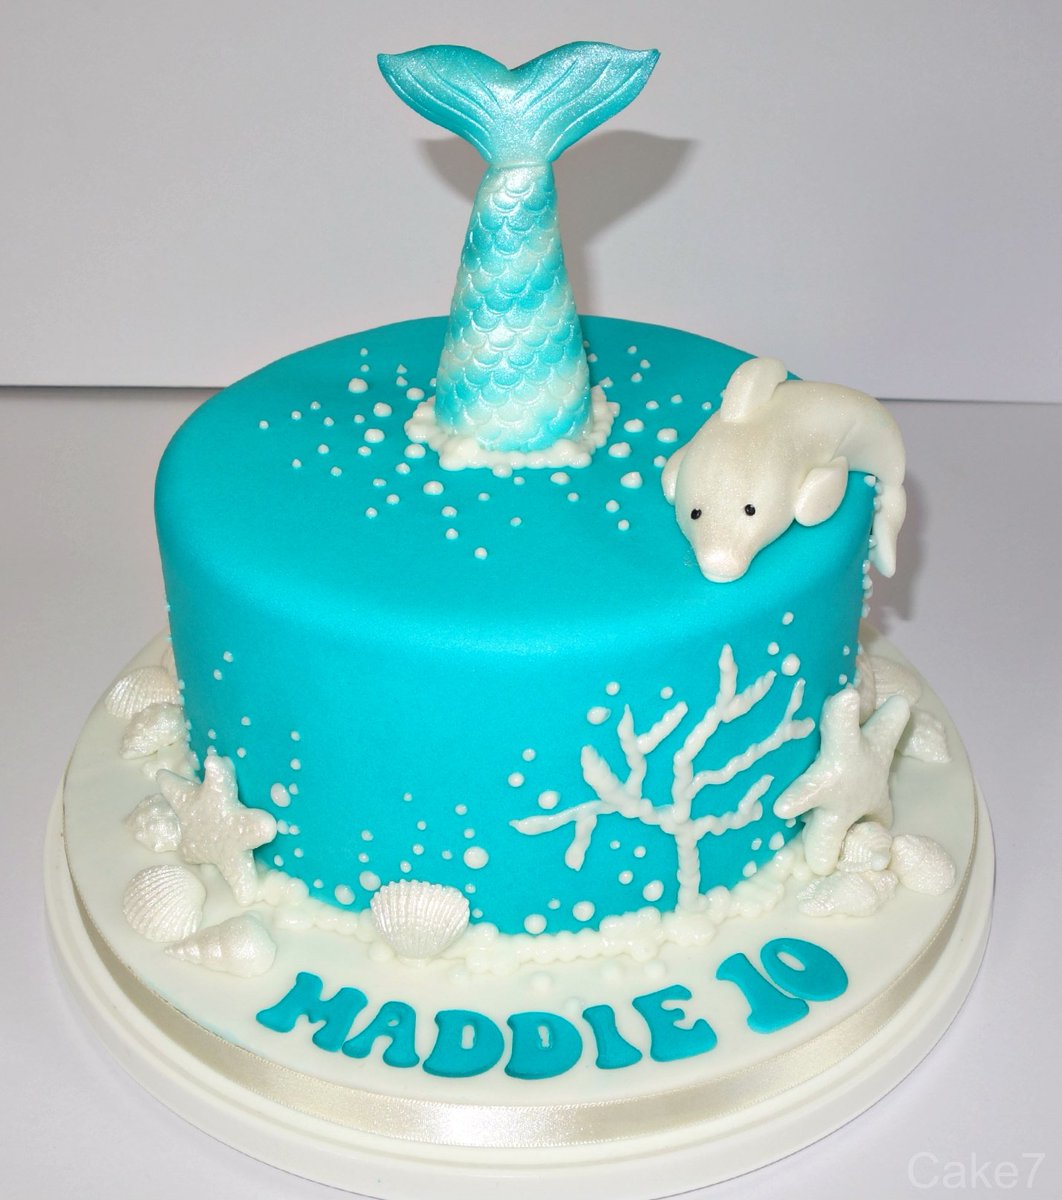 Surprising Cake7 On Twitter Dolphin Mermaid Oceanic Themed Double Funny Birthday Cards Online Alyptdamsfinfo